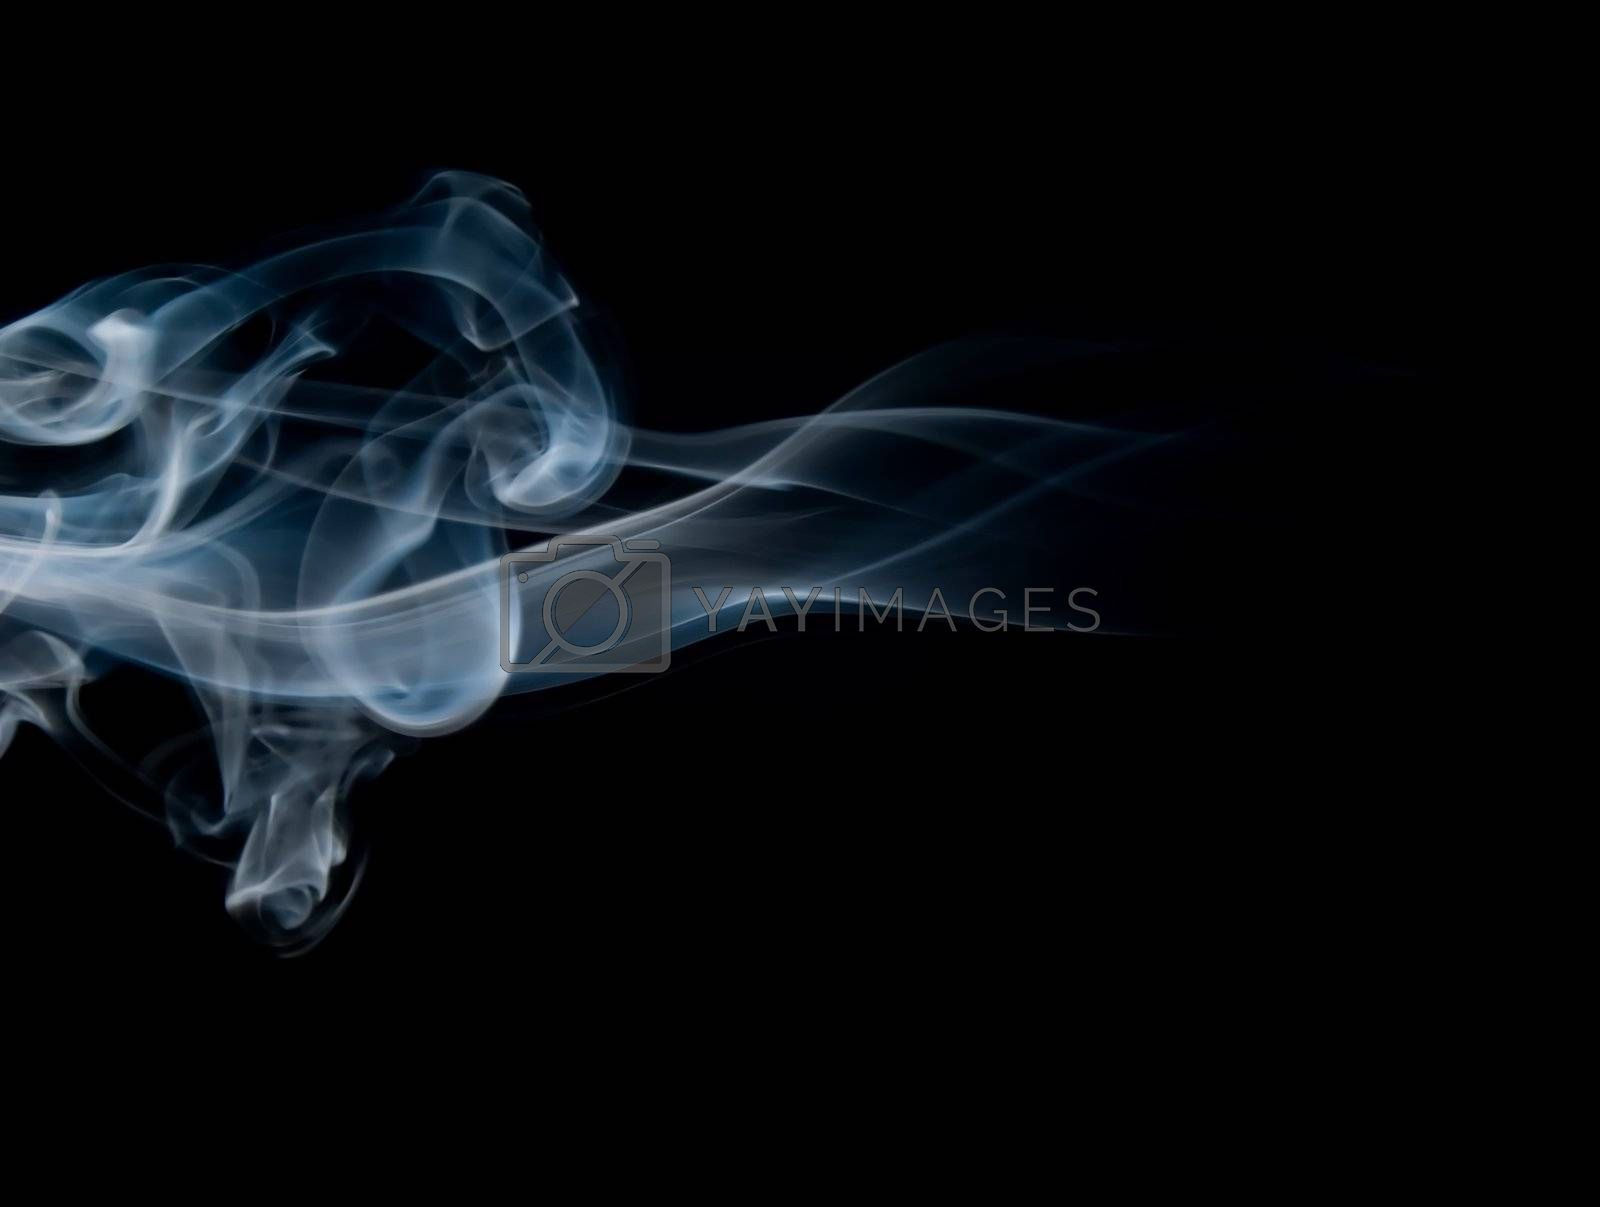 Smoke by henrischmit